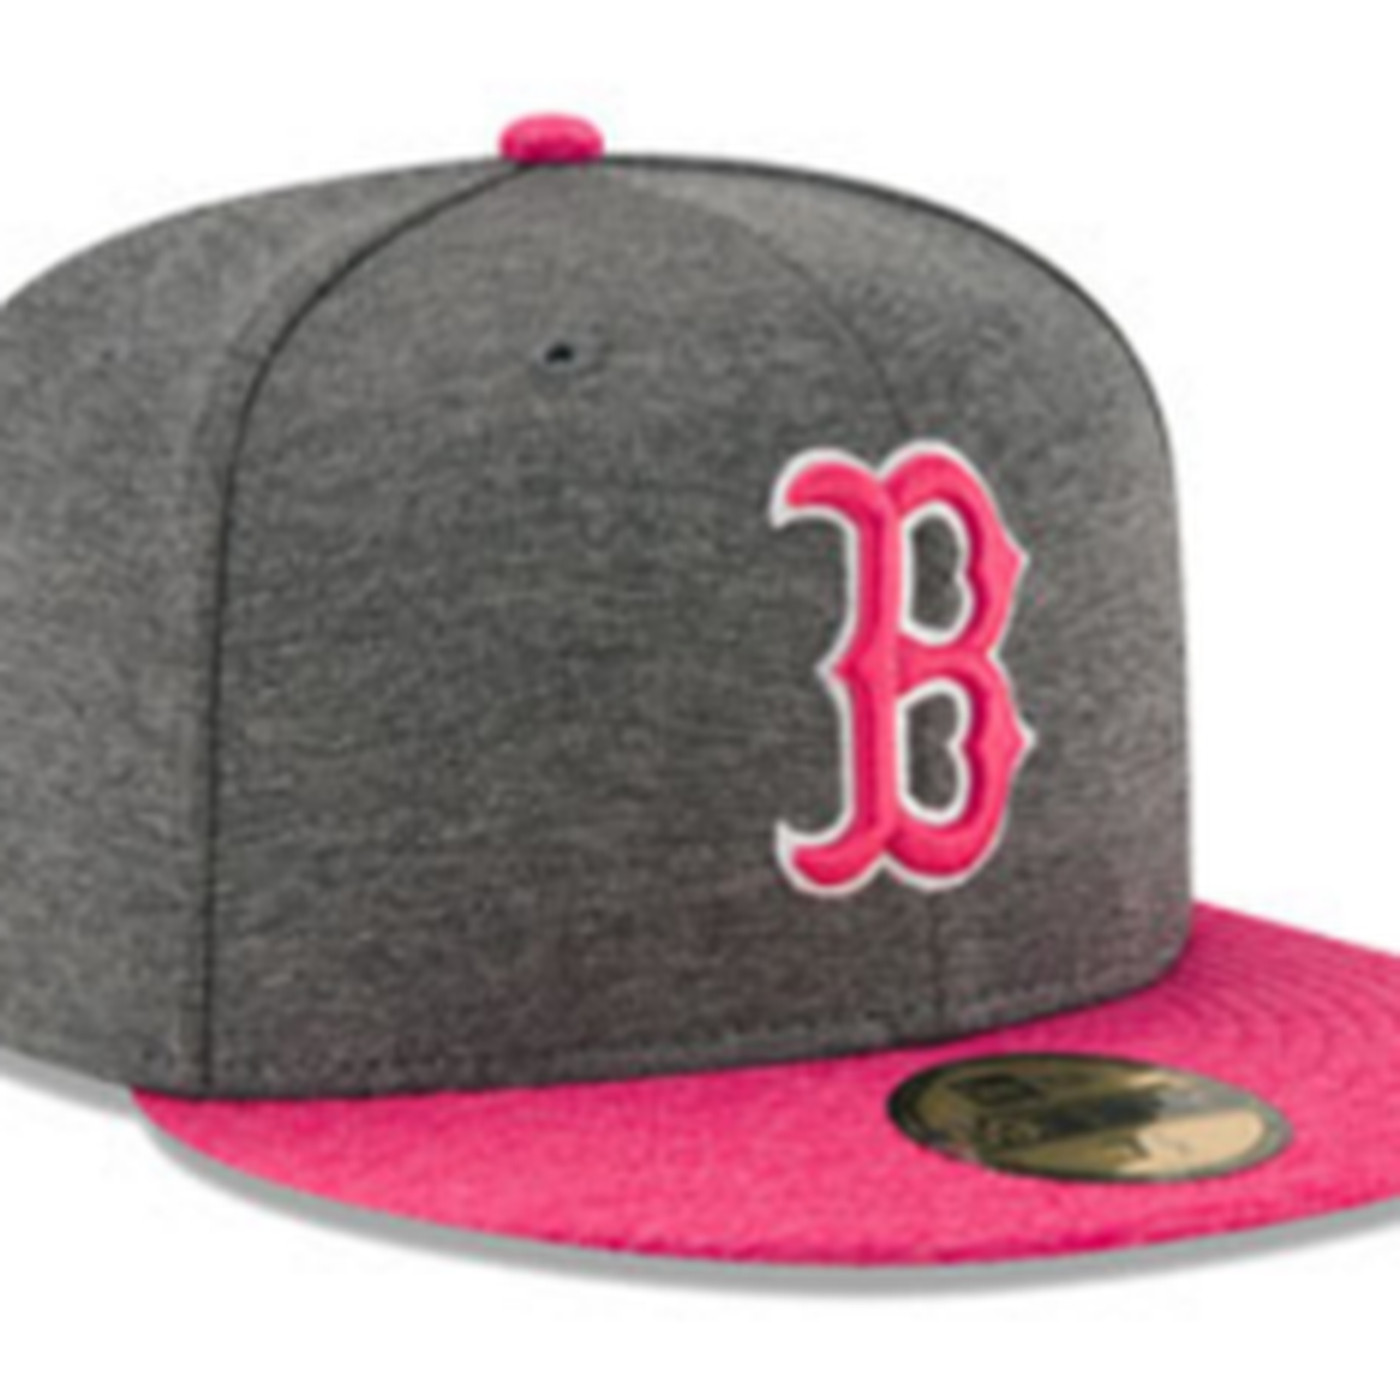 aeaf10f273d MLB unveils Red Sox special event hats and jerseys for 2017 - Over ...